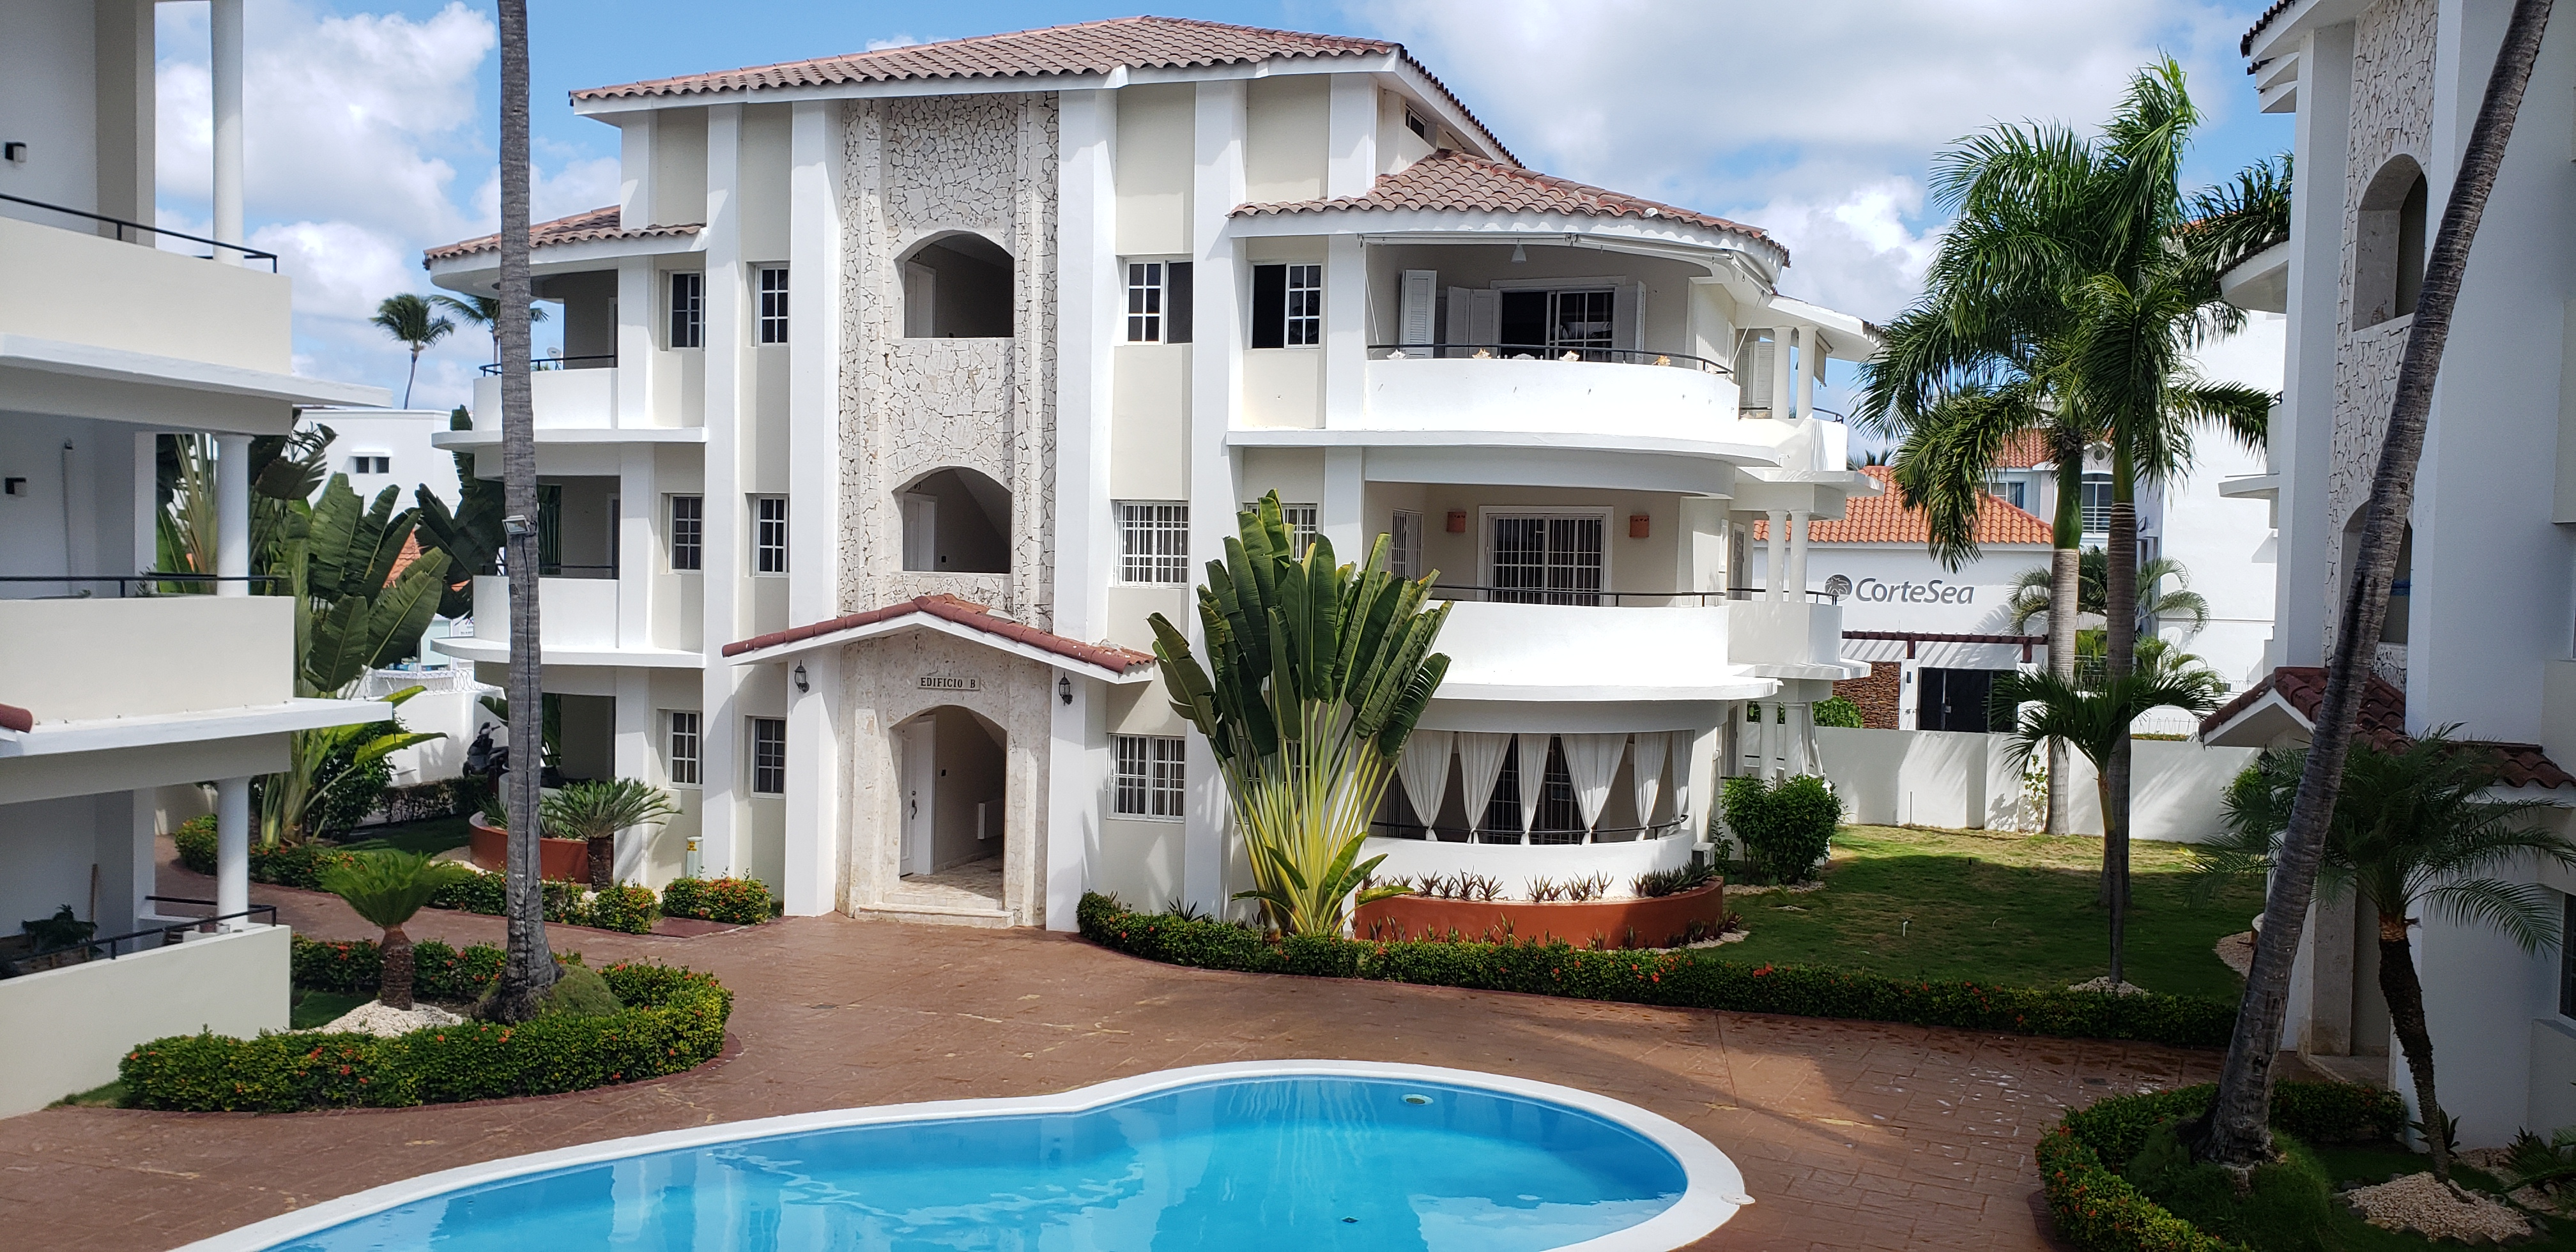 EXCELLENT OPPORTUNITY APARTMENT IN ARENAS DEL CARIBE